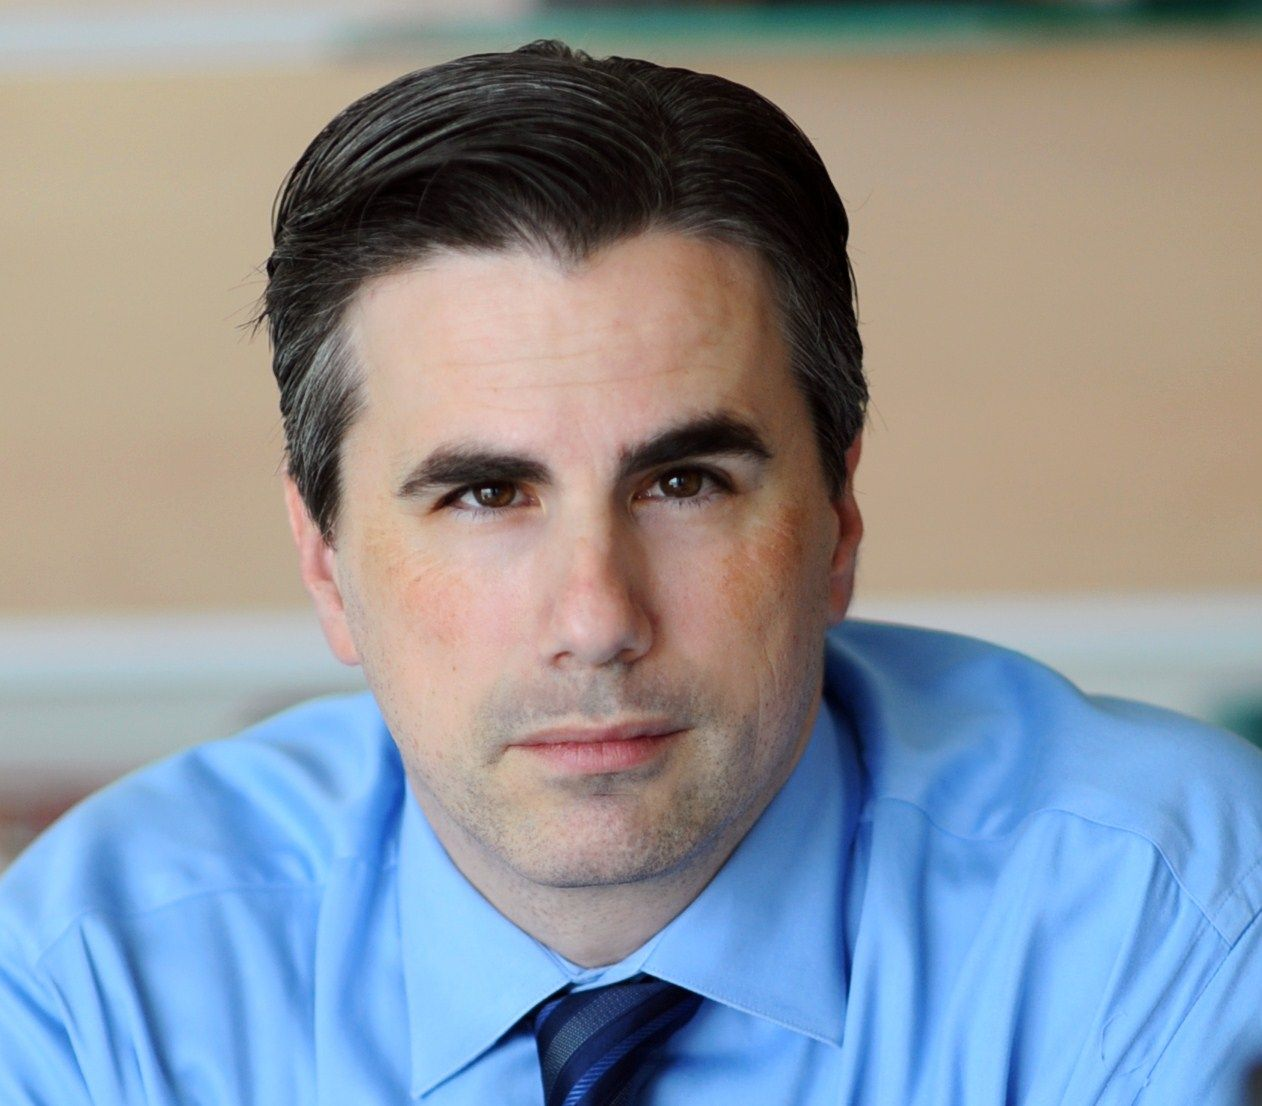 Tom Fitton